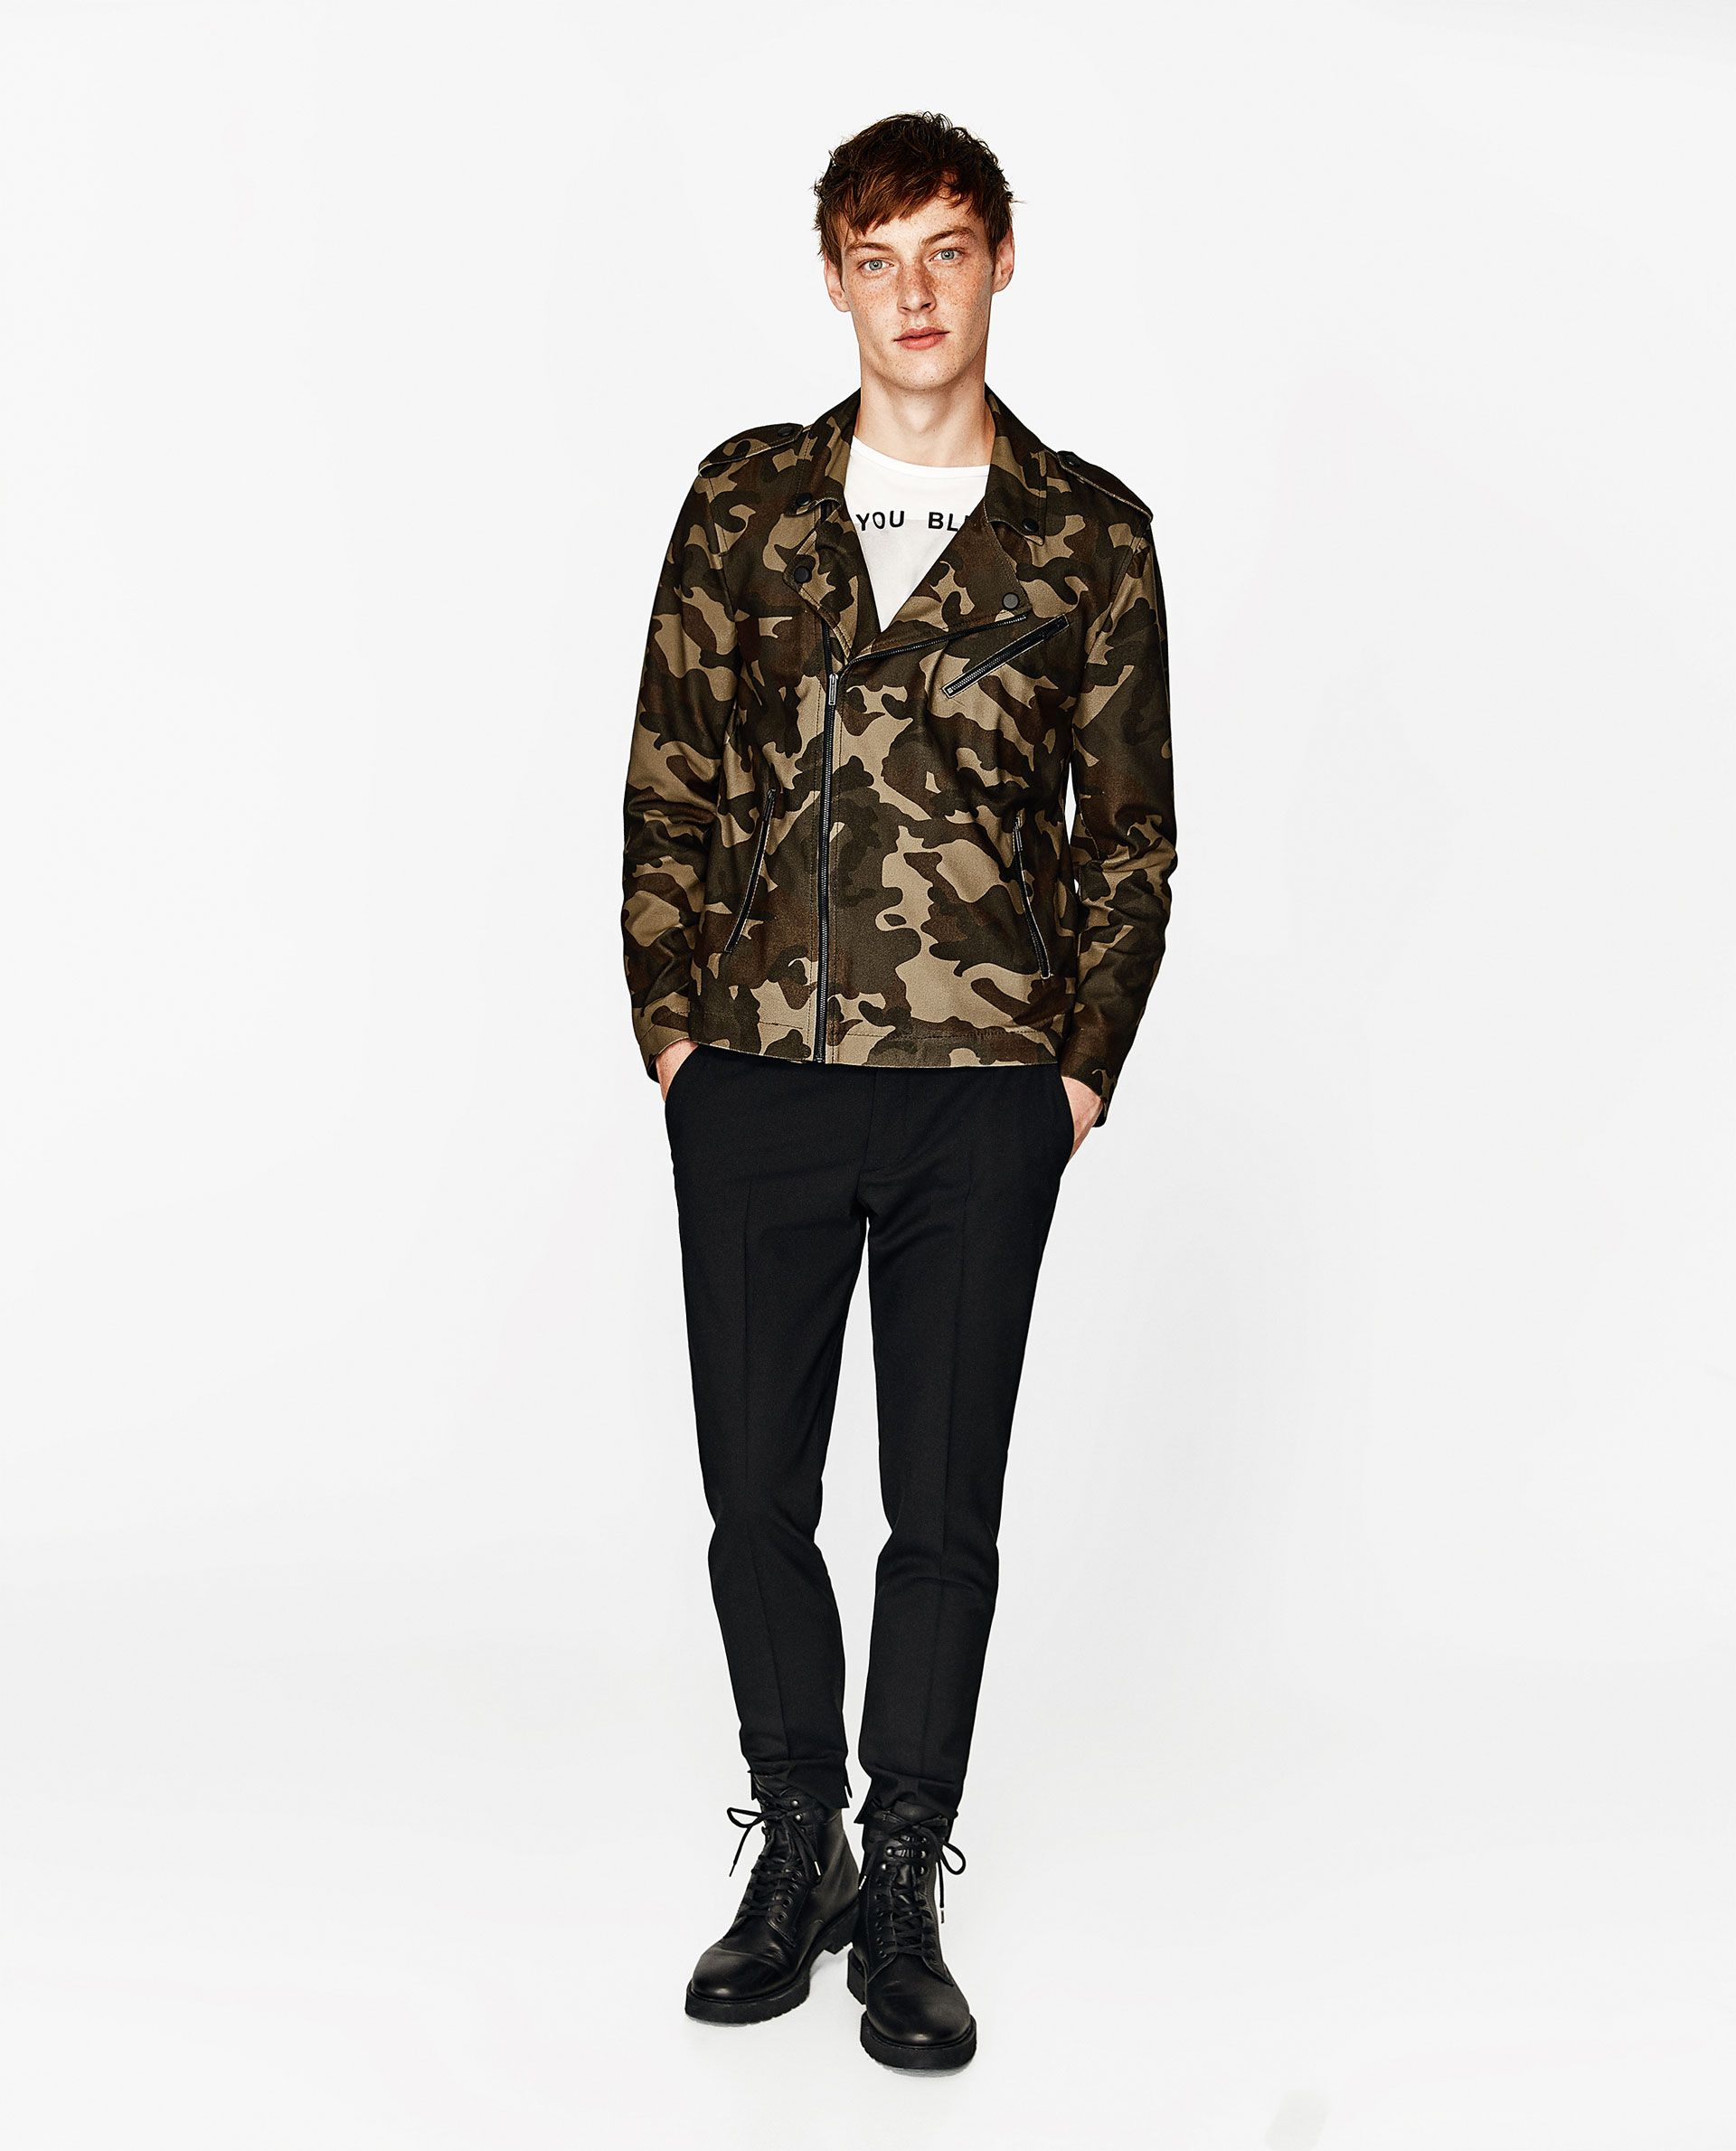 Mens Camouflage Leather Jacket Bomber Style 100/% Lambskin Leather Camo Military